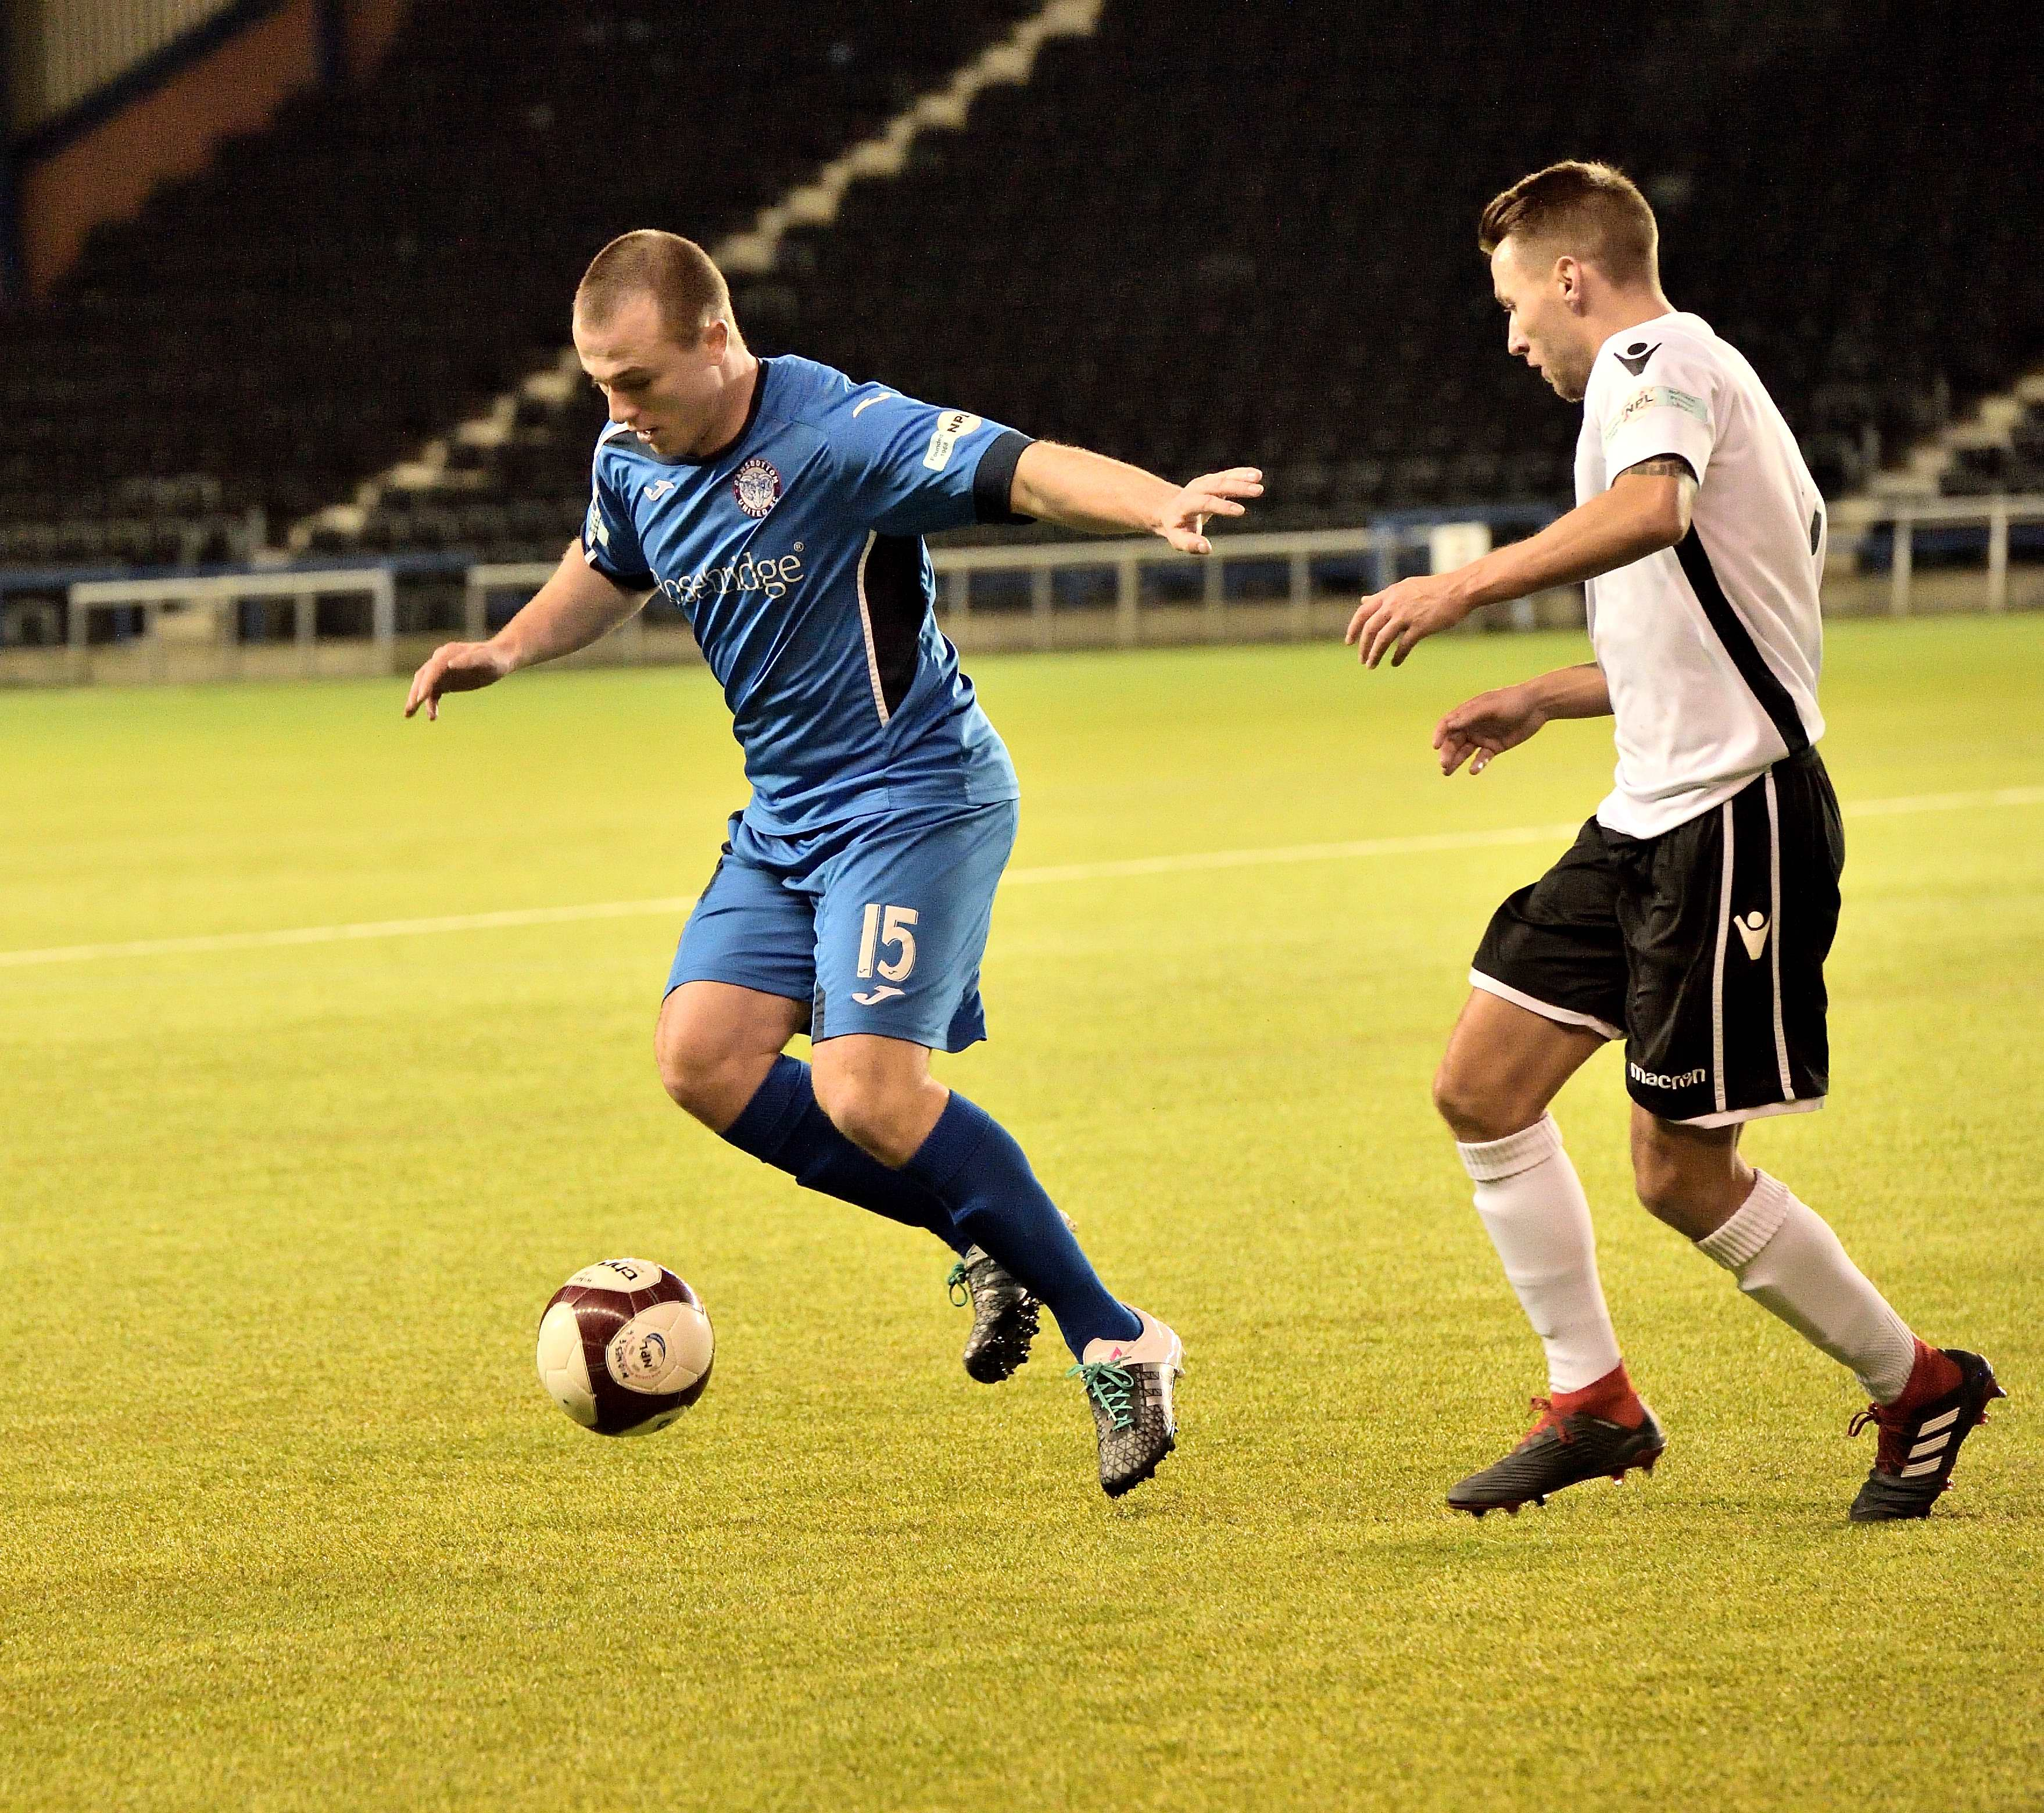 Widnes 2 Rams 2 - Match action